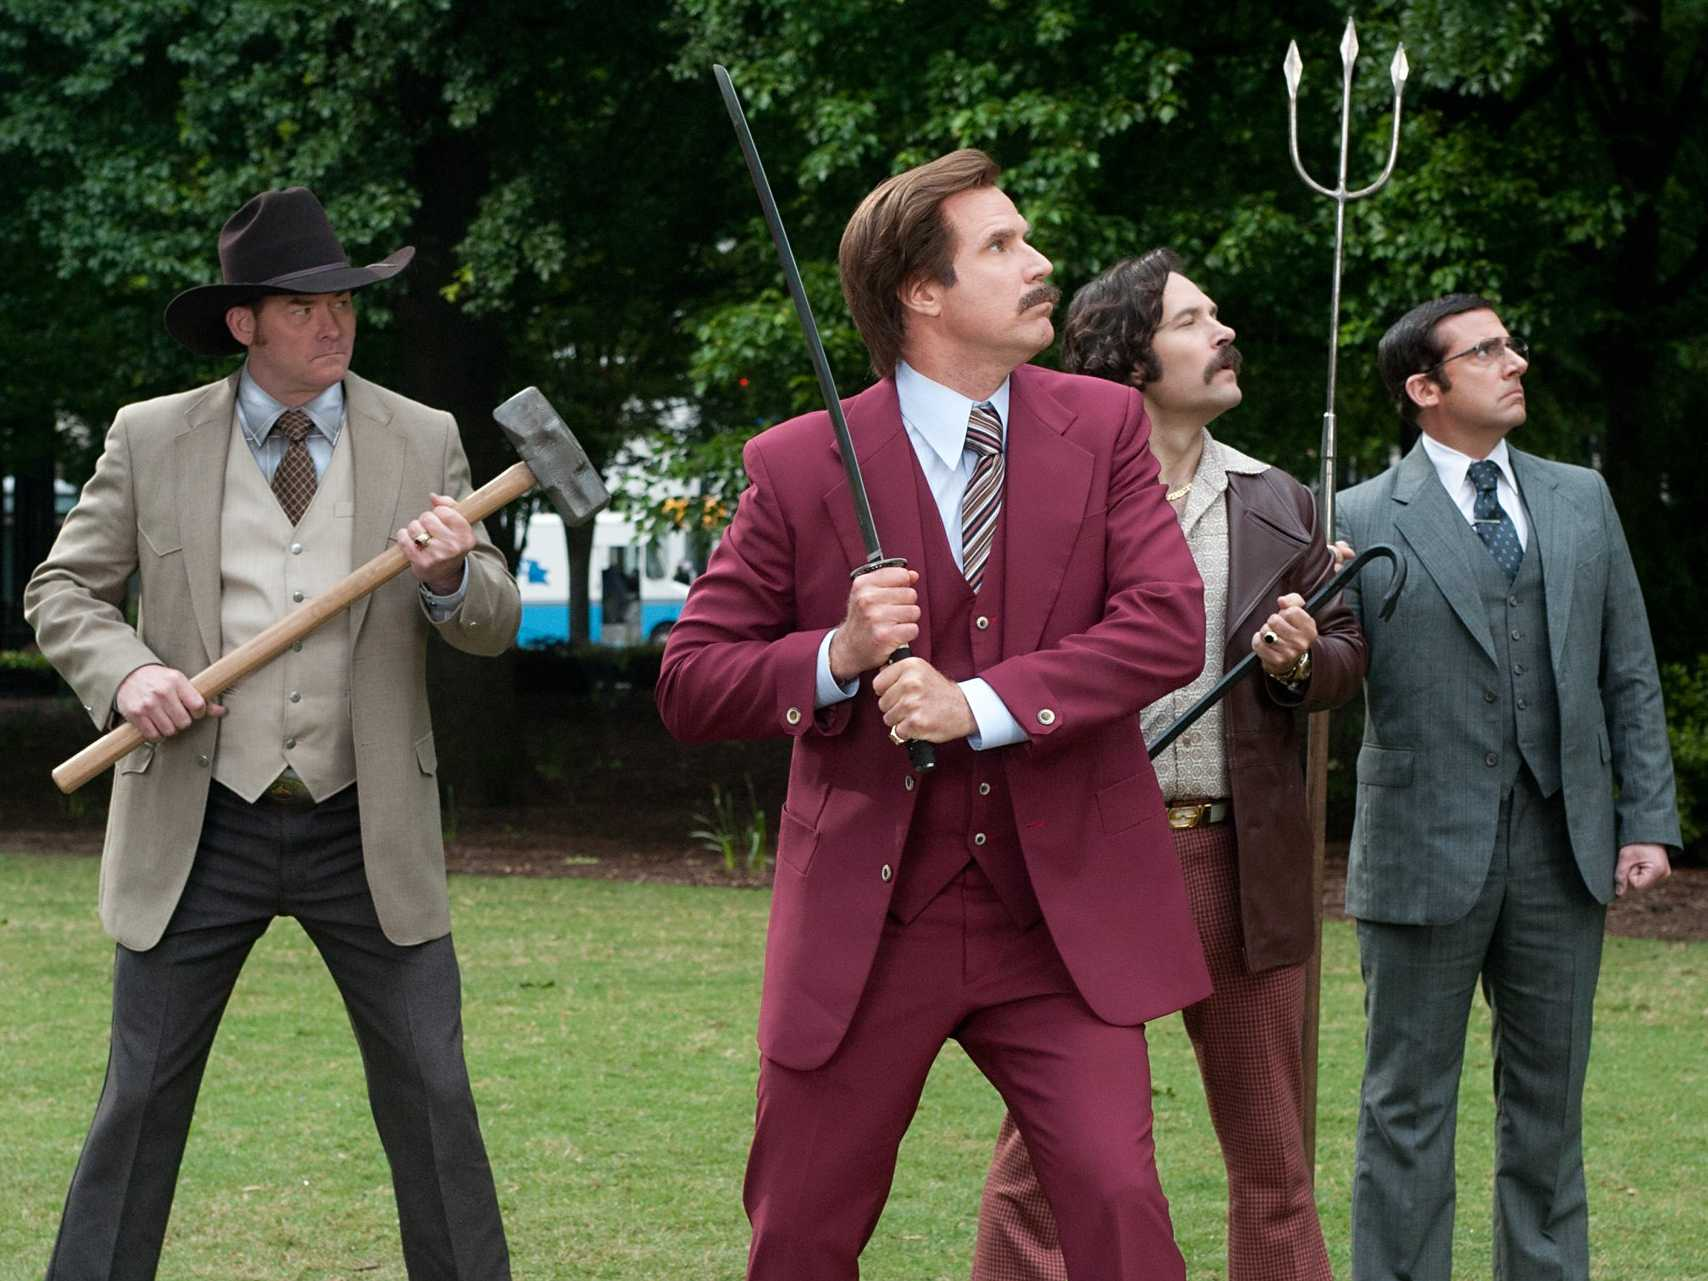 http://www.redbrick.me/wp-content/uploads/2014/01/the-best-part-of-anchorman-2-features-a-star-studded-epic-news-team-brawl.jpg